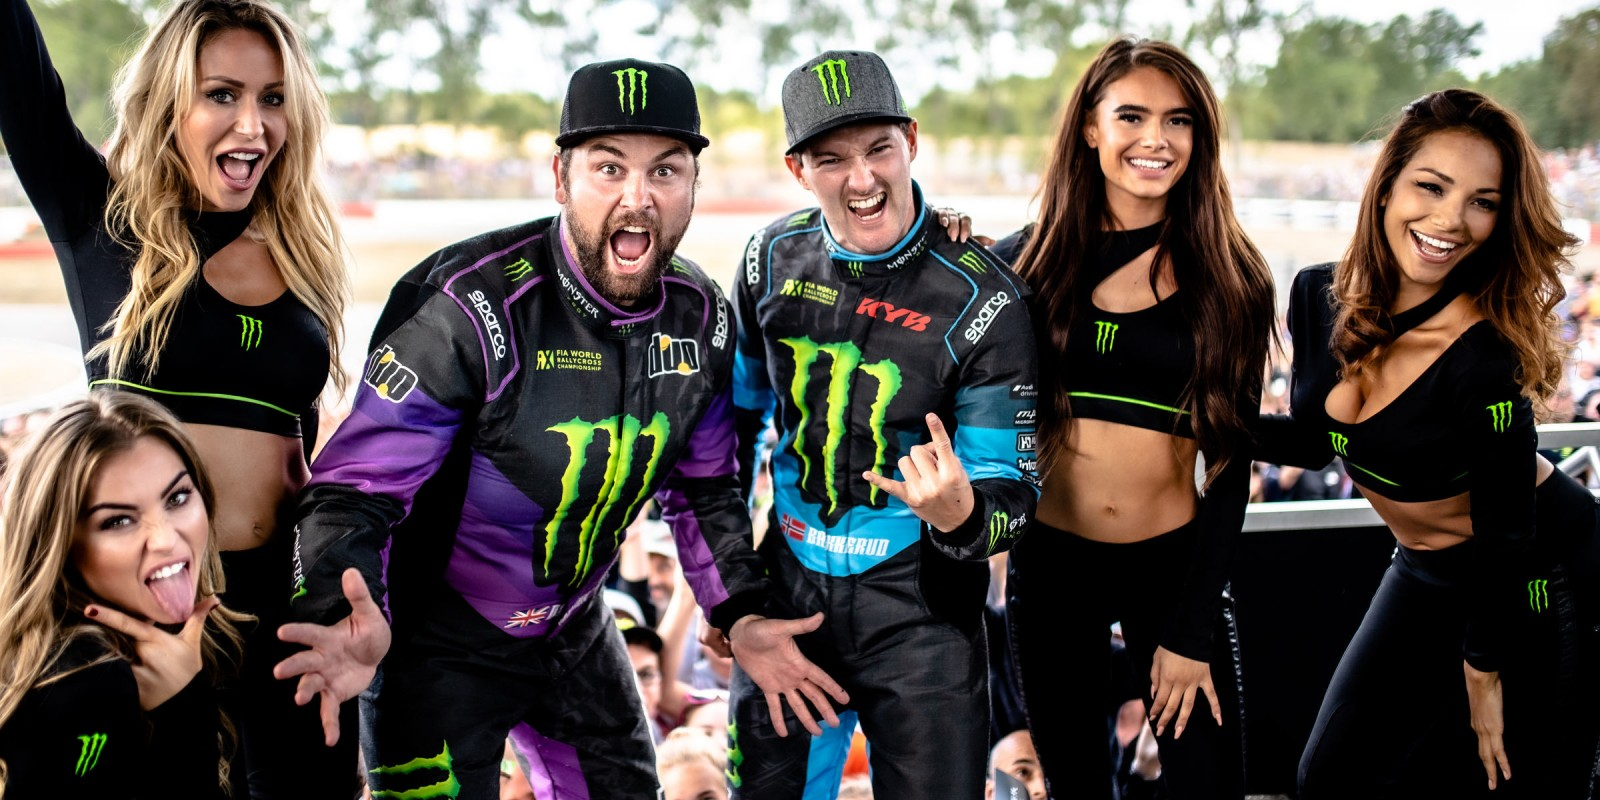 Sunday images from the 2019 World RX of France